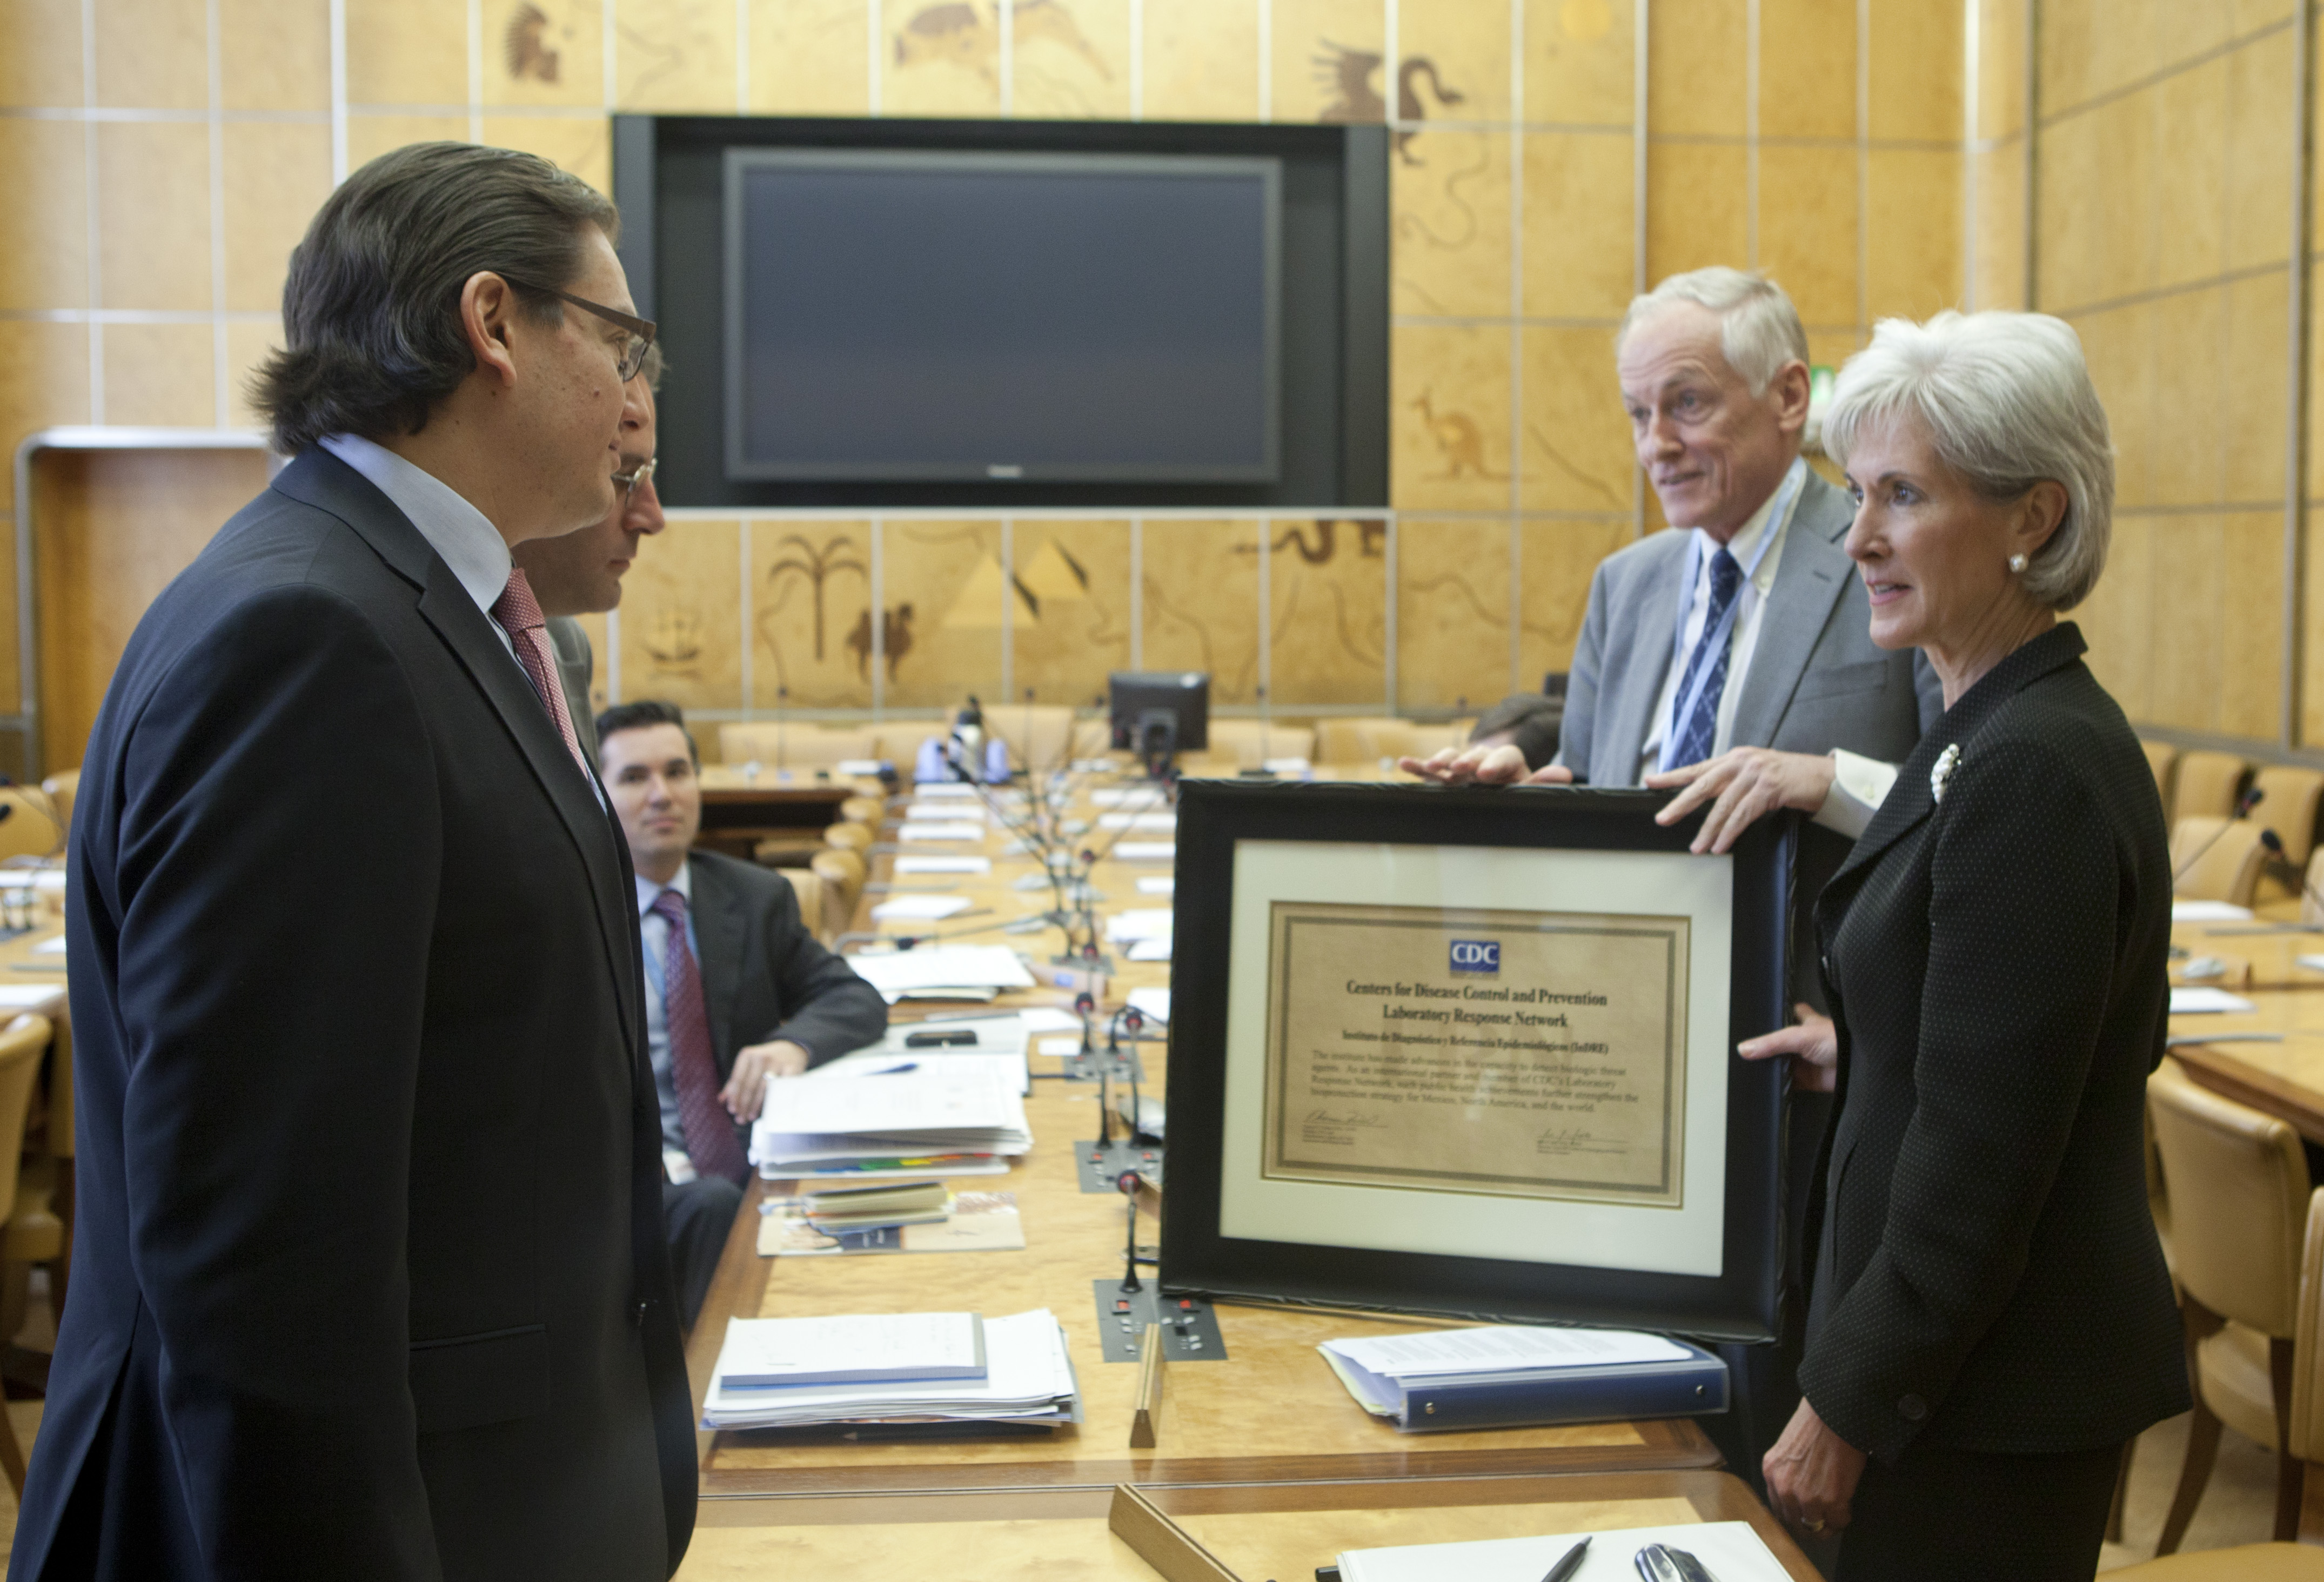 A plaque is presented to Mexican official.